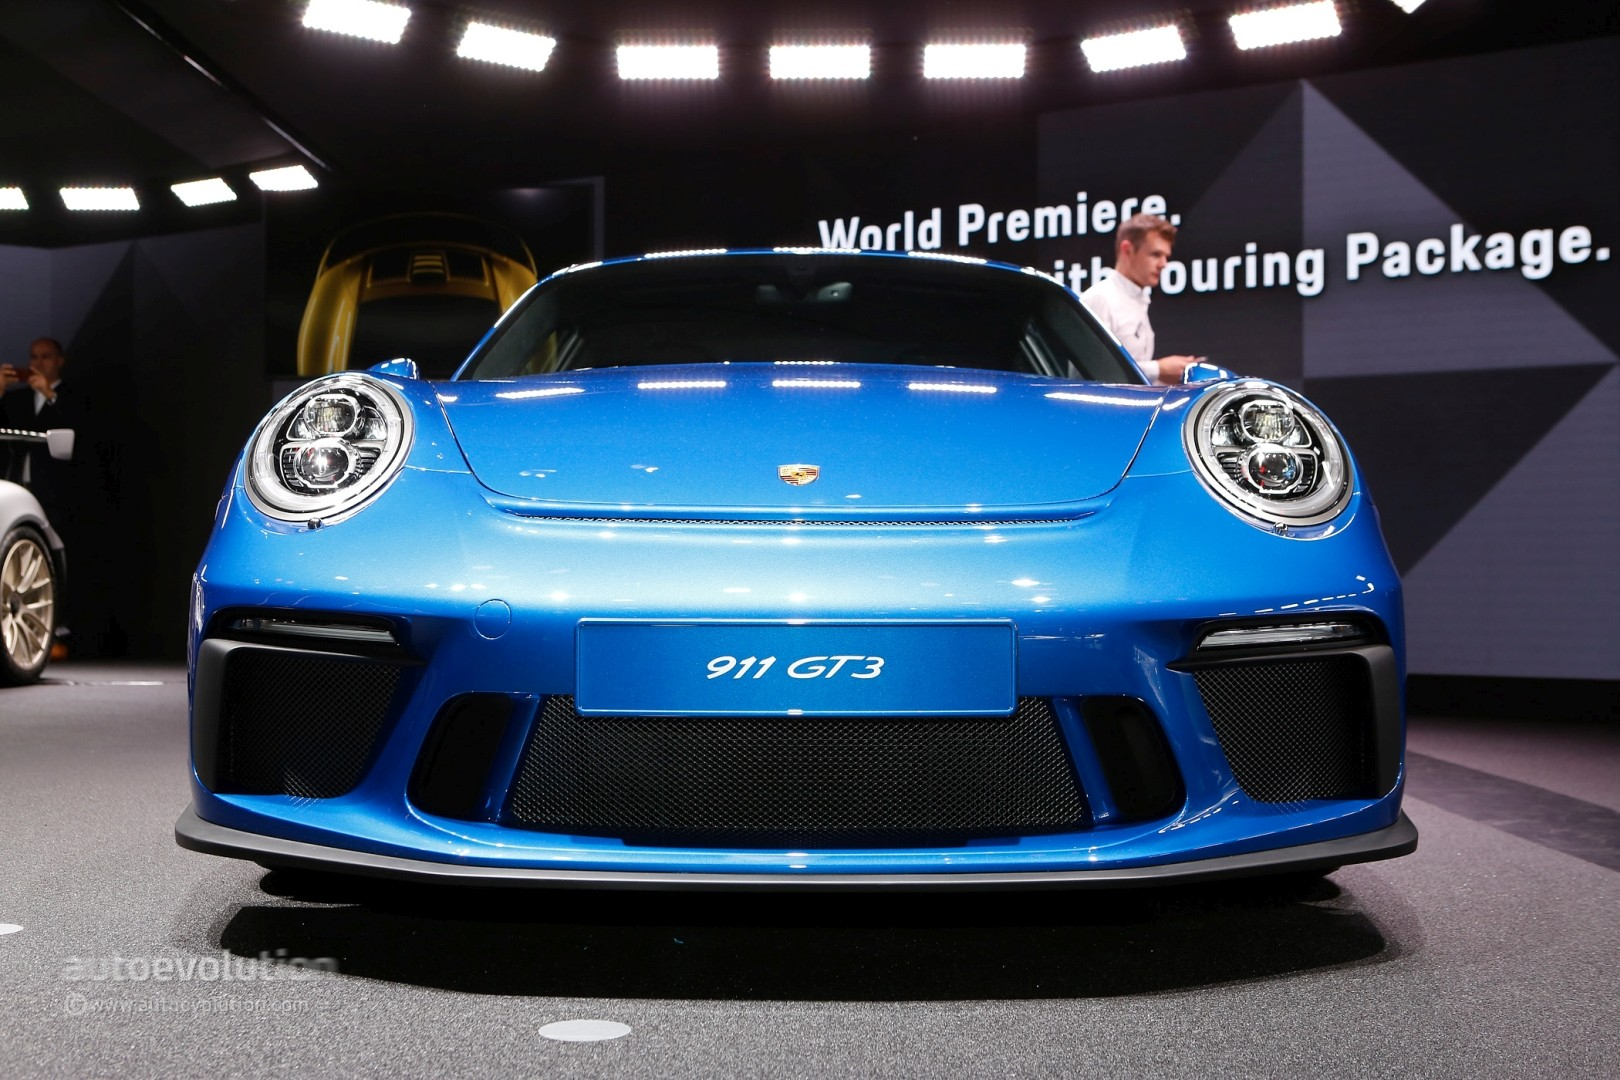 2018 Porsche 911 GT3 Touring Package Looks Bewitching in ...